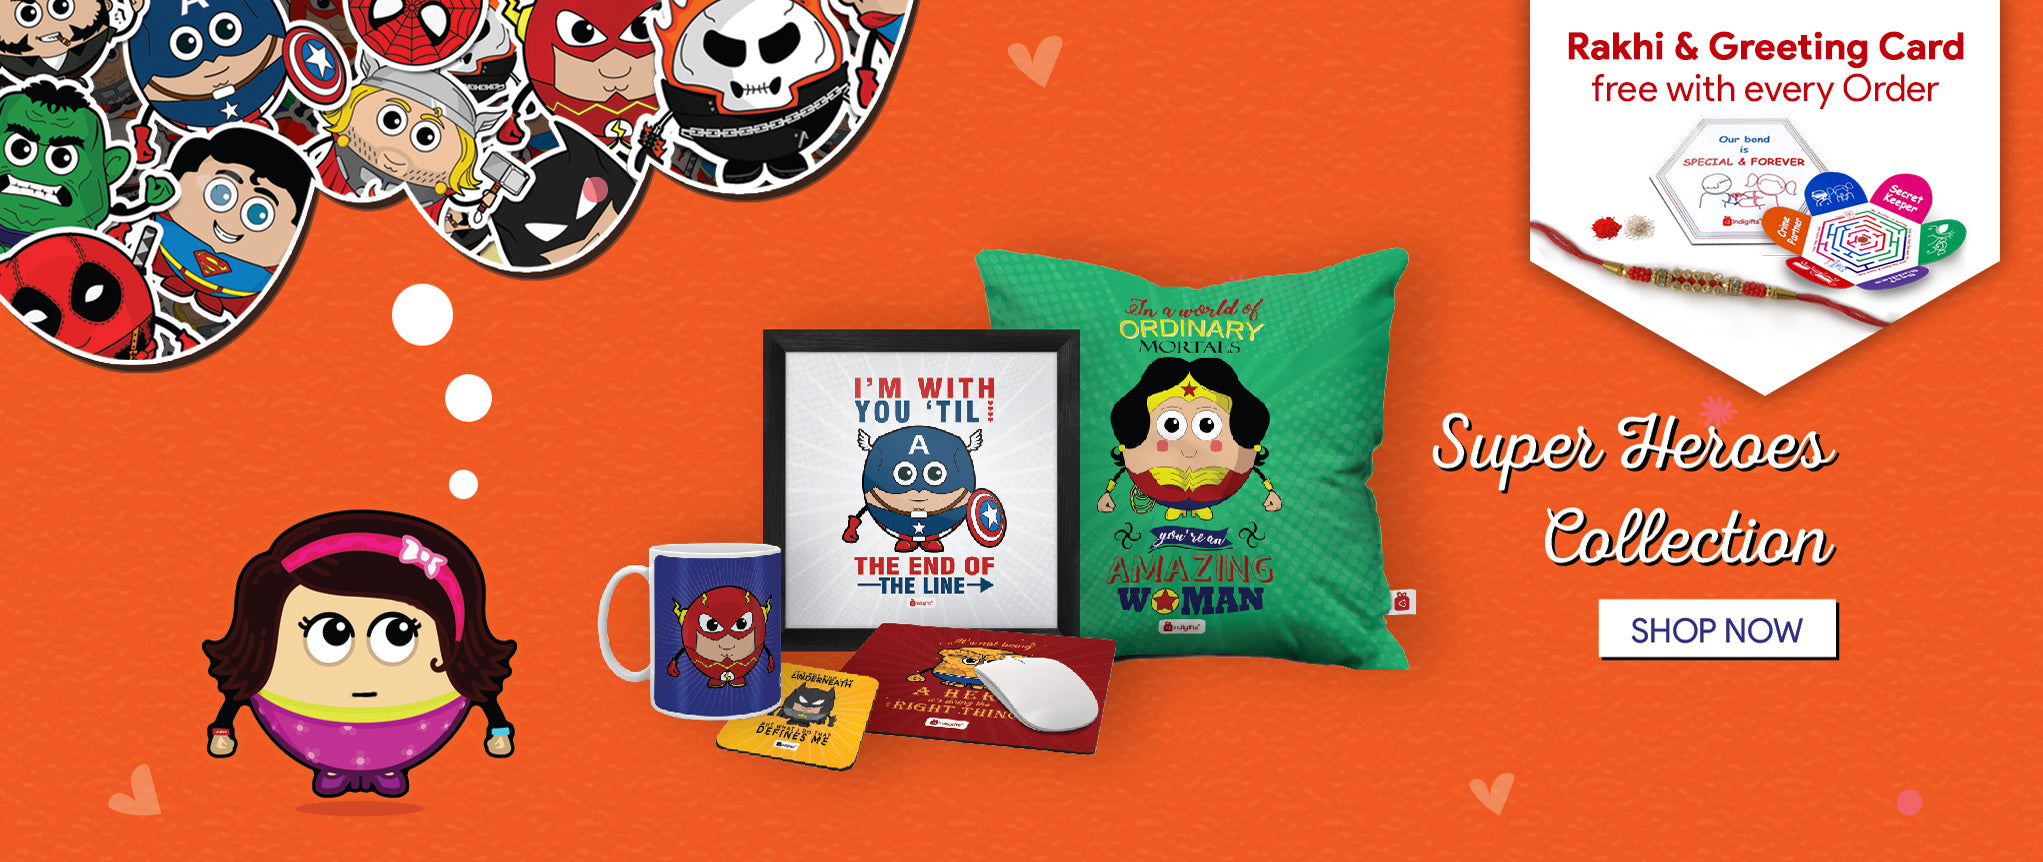 Gifts for Sibling, Rakhi Special. Superheroes designer Gifts